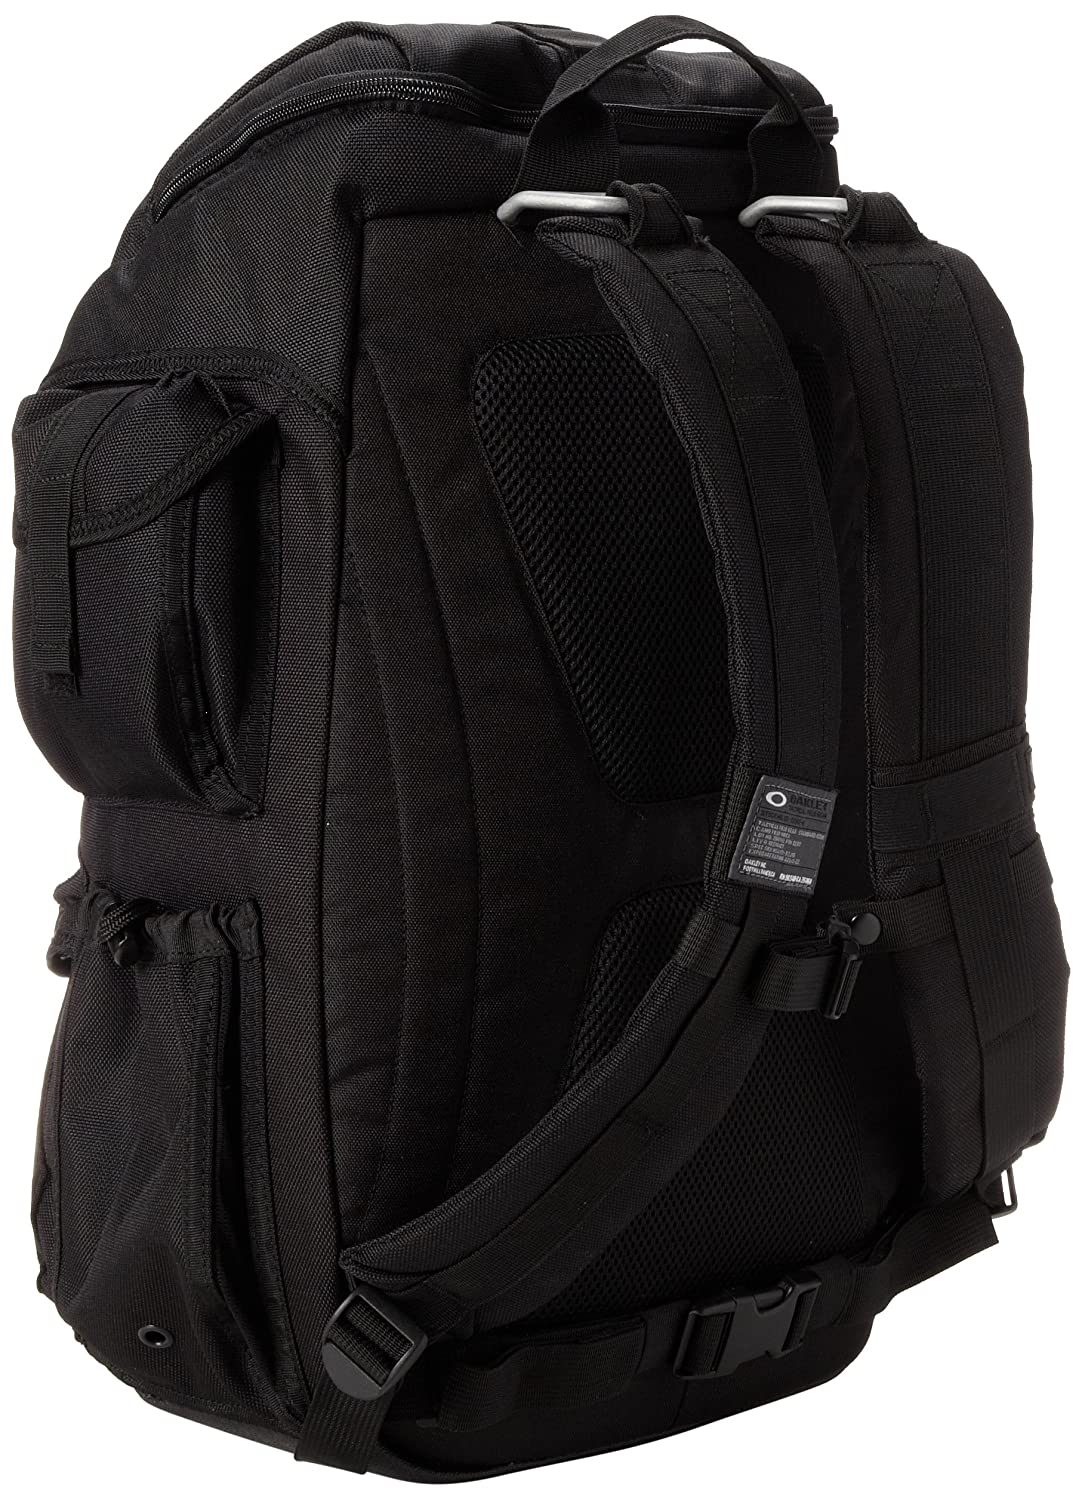 oakley bags amazon qrpv  oakley bags amazon